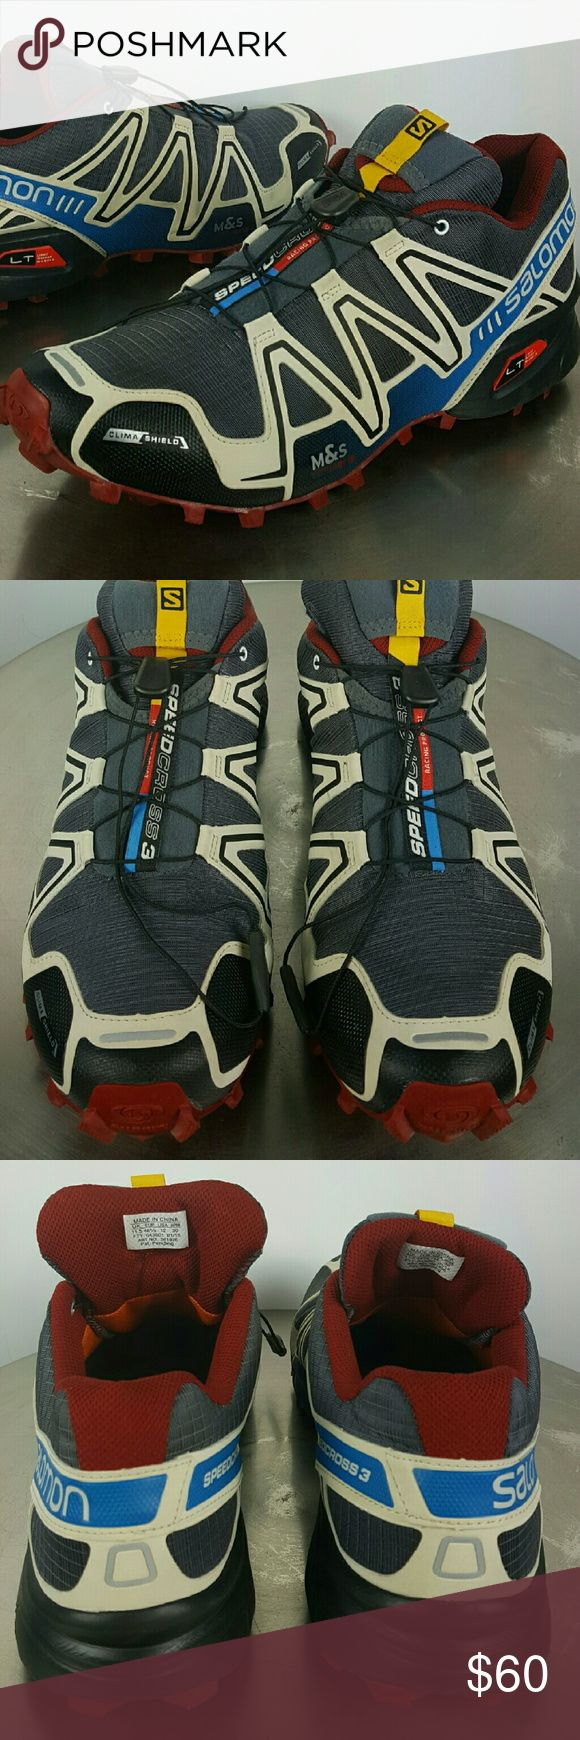 Salomon 3 SpeedCross Trail Shoes, Men's Sz 12 Nice Salomon 3 SpeedCross Trail Shoes in clean and great condition... Lightly Worn, Men's Size 12, shows very little signs of wear on the nice sole... Salomon  Shoes Athletic Shoes